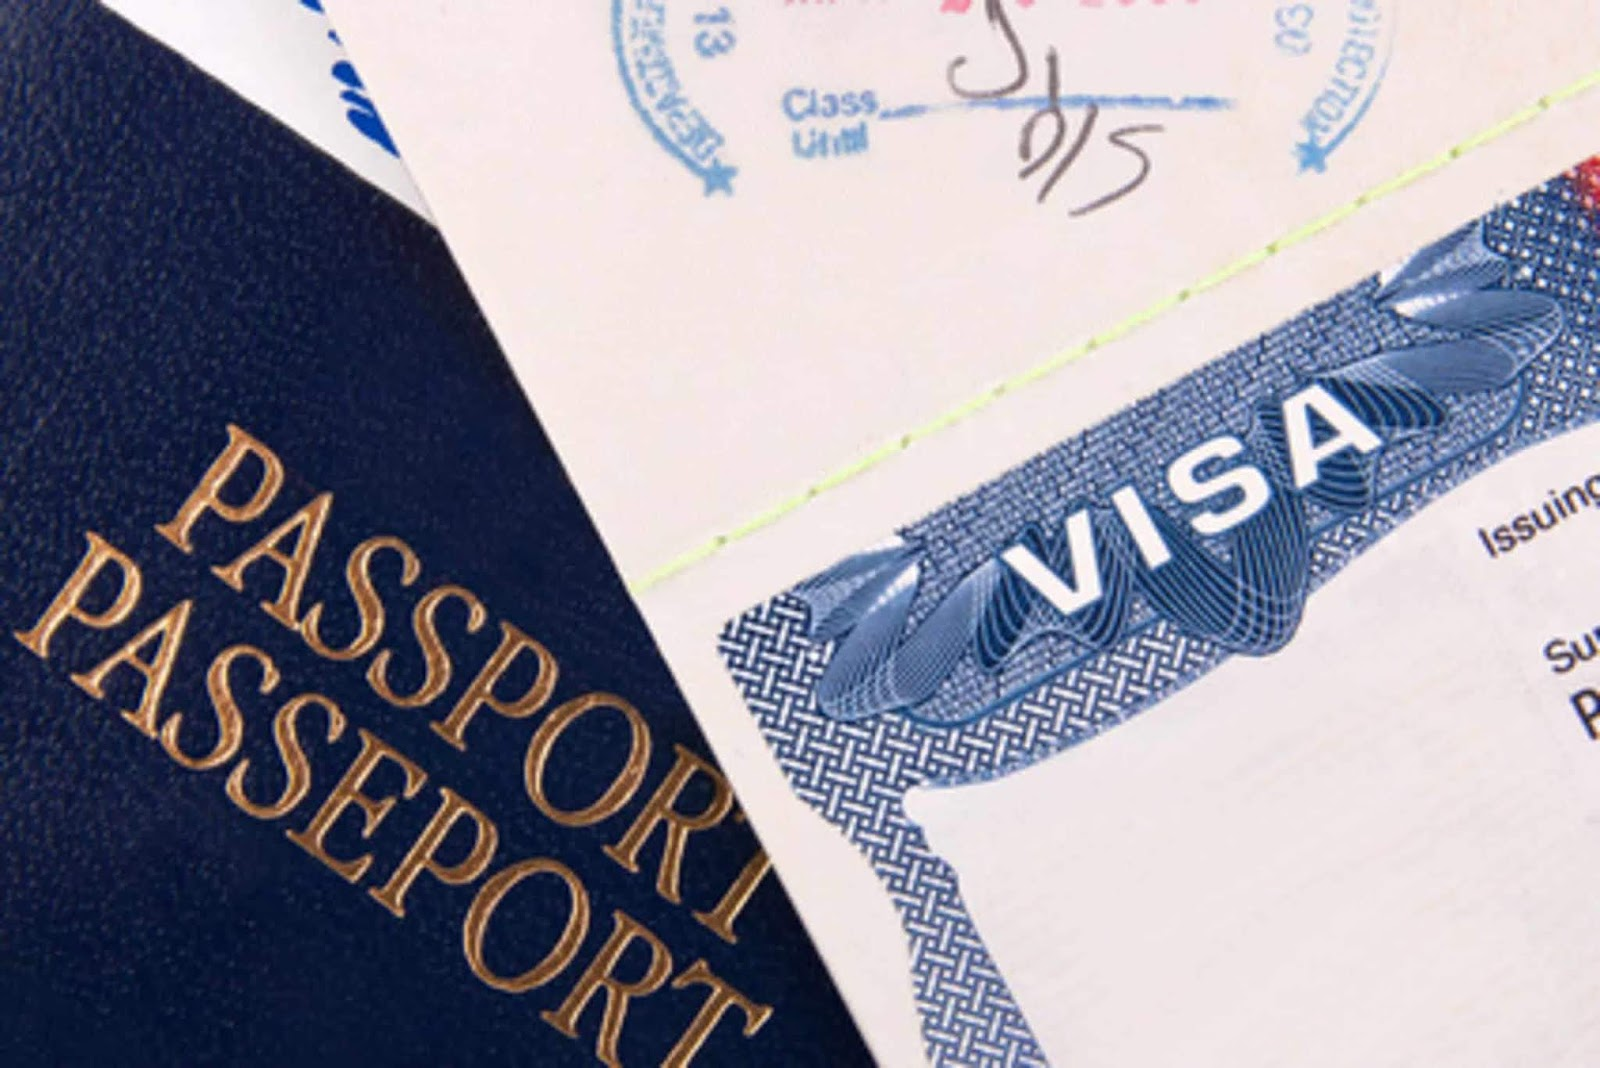 Top 5 Countries With Long Visitor Visas for Travelers